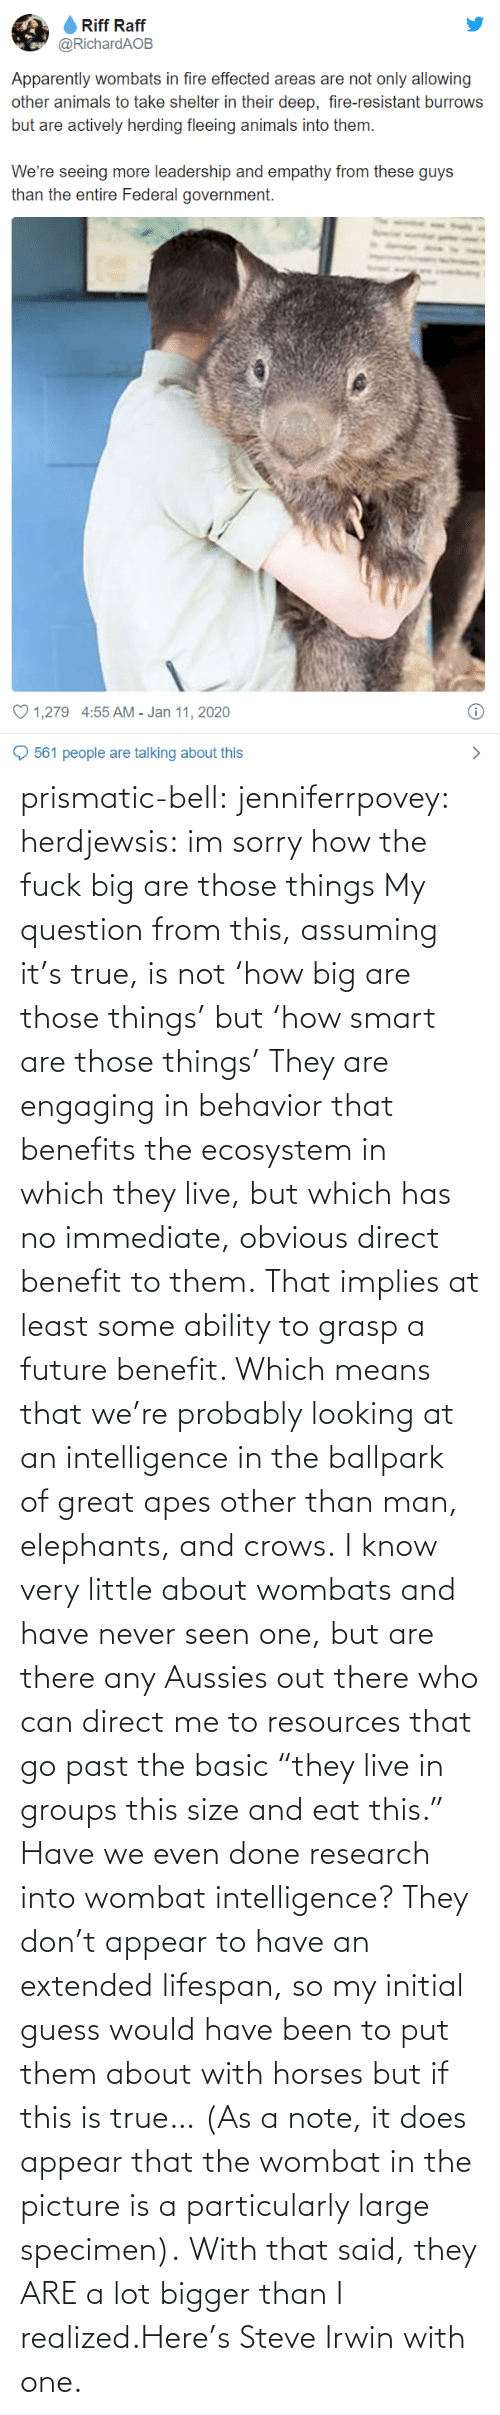 "Realized: prismatic-bell:  jenniferrpovey: herdjewsis: im sorry how the fuck big are those things My question from this, assuming it's true, is not 'how big are those things' but 'how smart are those things' They are engaging in behavior that benefits the ecosystem in which they live, but which has no immediate, obvious direct benefit to them. That implies at least some ability to grasp a future benefit. Which means that we're probably looking at an intelligence in the ballpark of great apes other than man, elephants, and crows. I know very little about wombats and have never seen one, but are there any Aussies out there who can direct me to resources that go past the basic ""they live in groups this size and eat this."" Have we even done research into wombat intelligence? They don't appear to have an extended lifespan, so my initial guess would have been to put them about with horses but if this is true… (As a note, it does appear that the wombat in the picture is a particularly large specimen).  With that said, they ARE a lot bigger than I realized.Here's Steve Irwin with one."